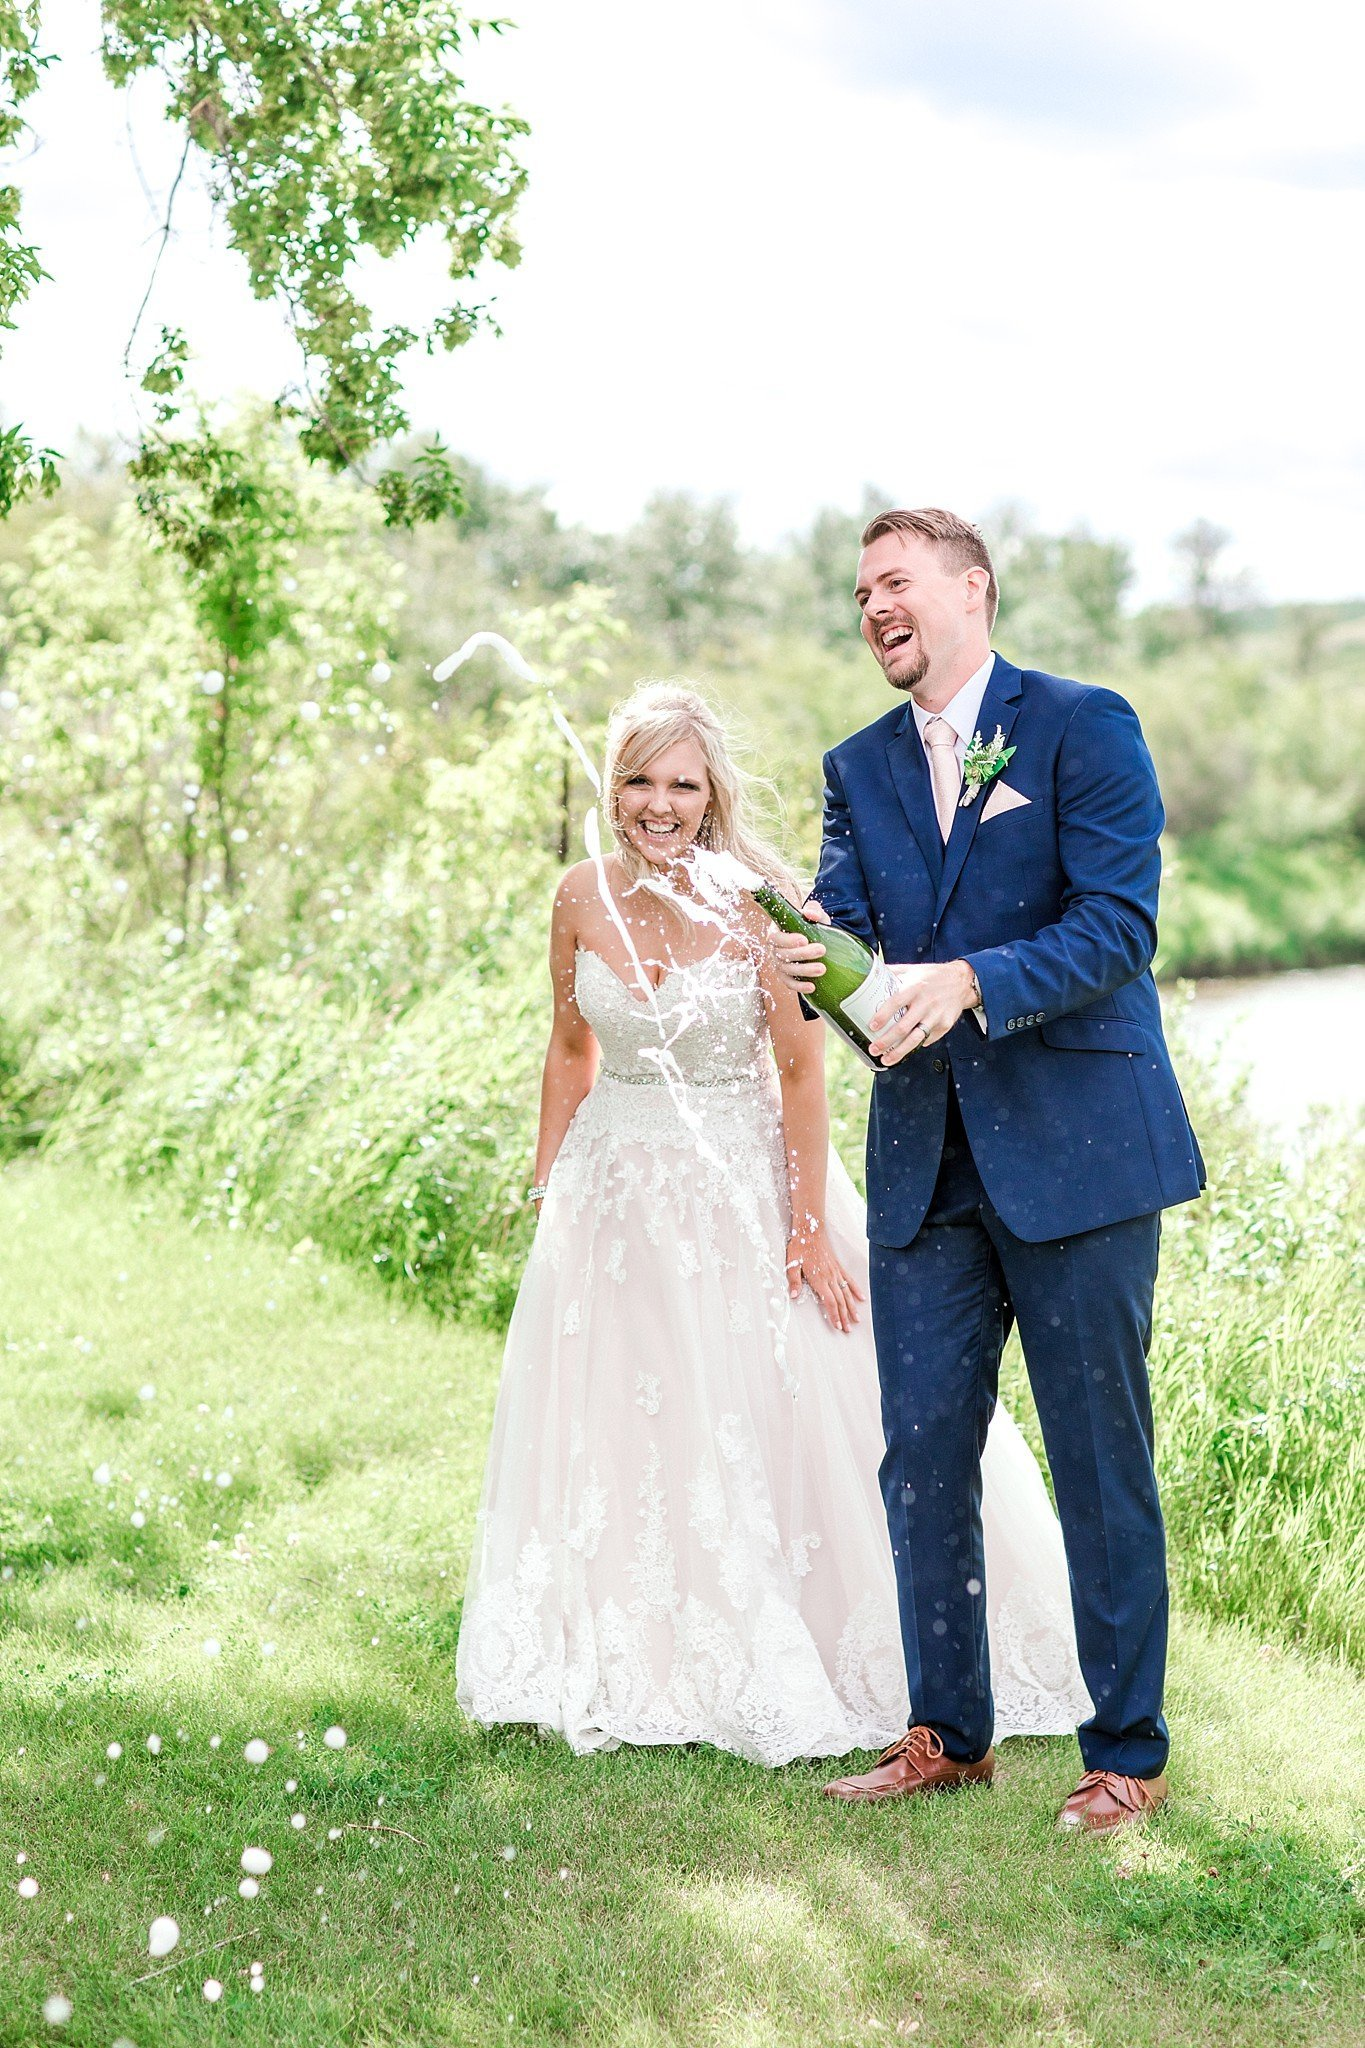 Pastel Wedding Photos Burma Park Alberta Stettler Photographer